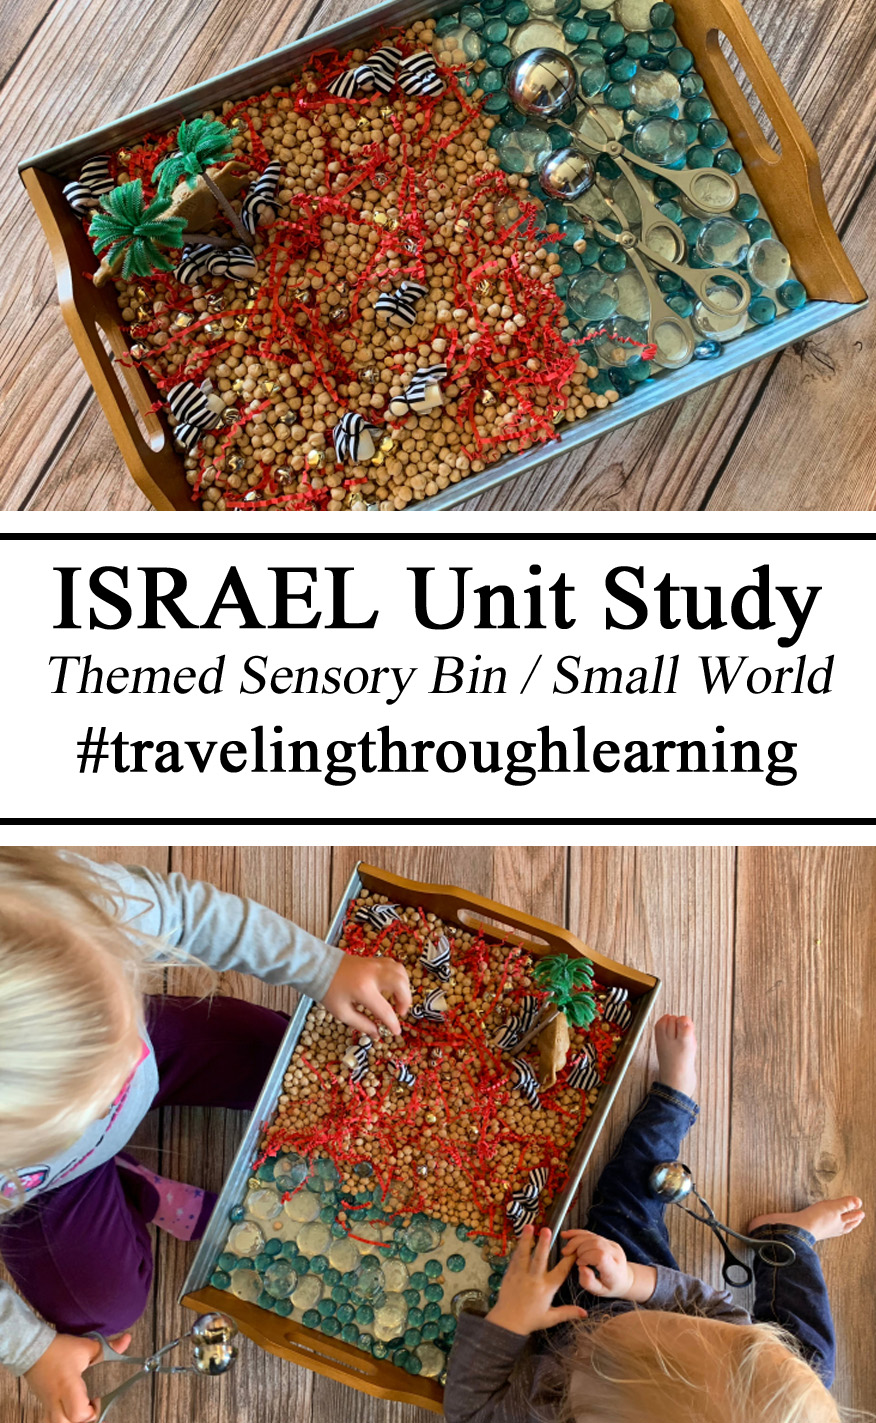 Sensory Play, Sensory Bin, Small World, Invitation to Play, #invitationtoplay, #travelingthroughlearning, geography, israel unit Study, Homeschool, Homeschooling Ideas, Themed Activities, Miniatures, Activities for Kids, Hands on Learning